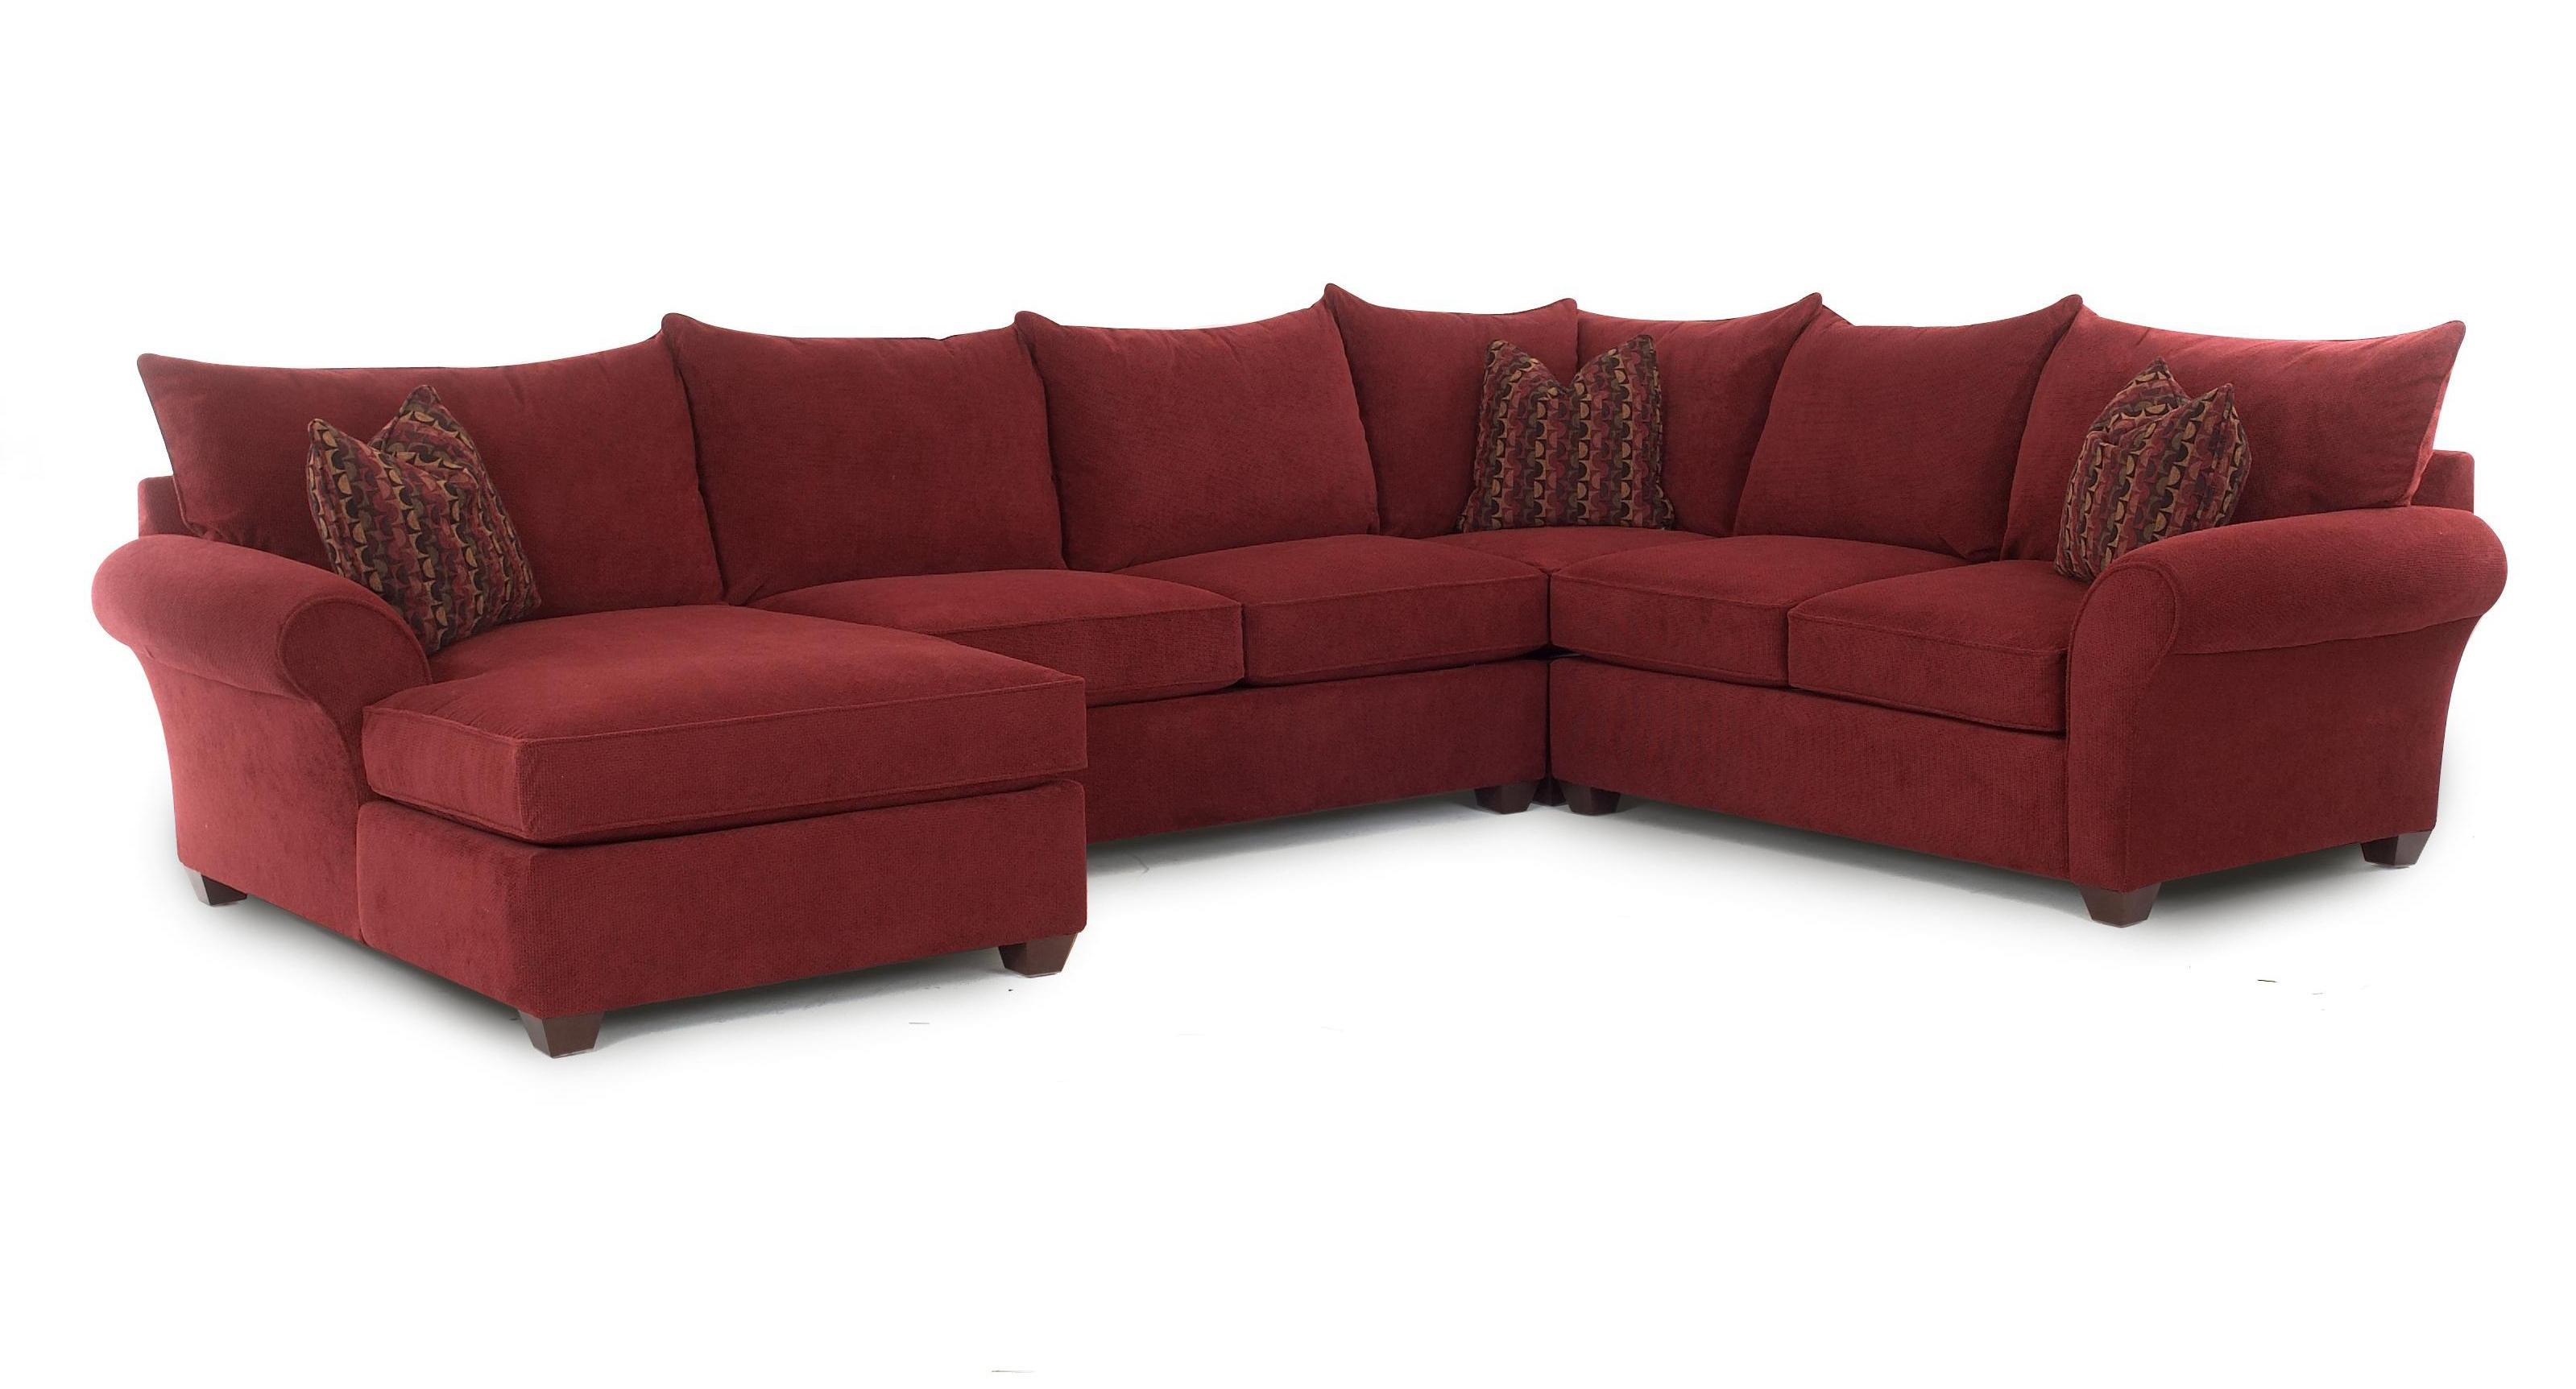 Sectional Sofa with Chaise by Klaussner